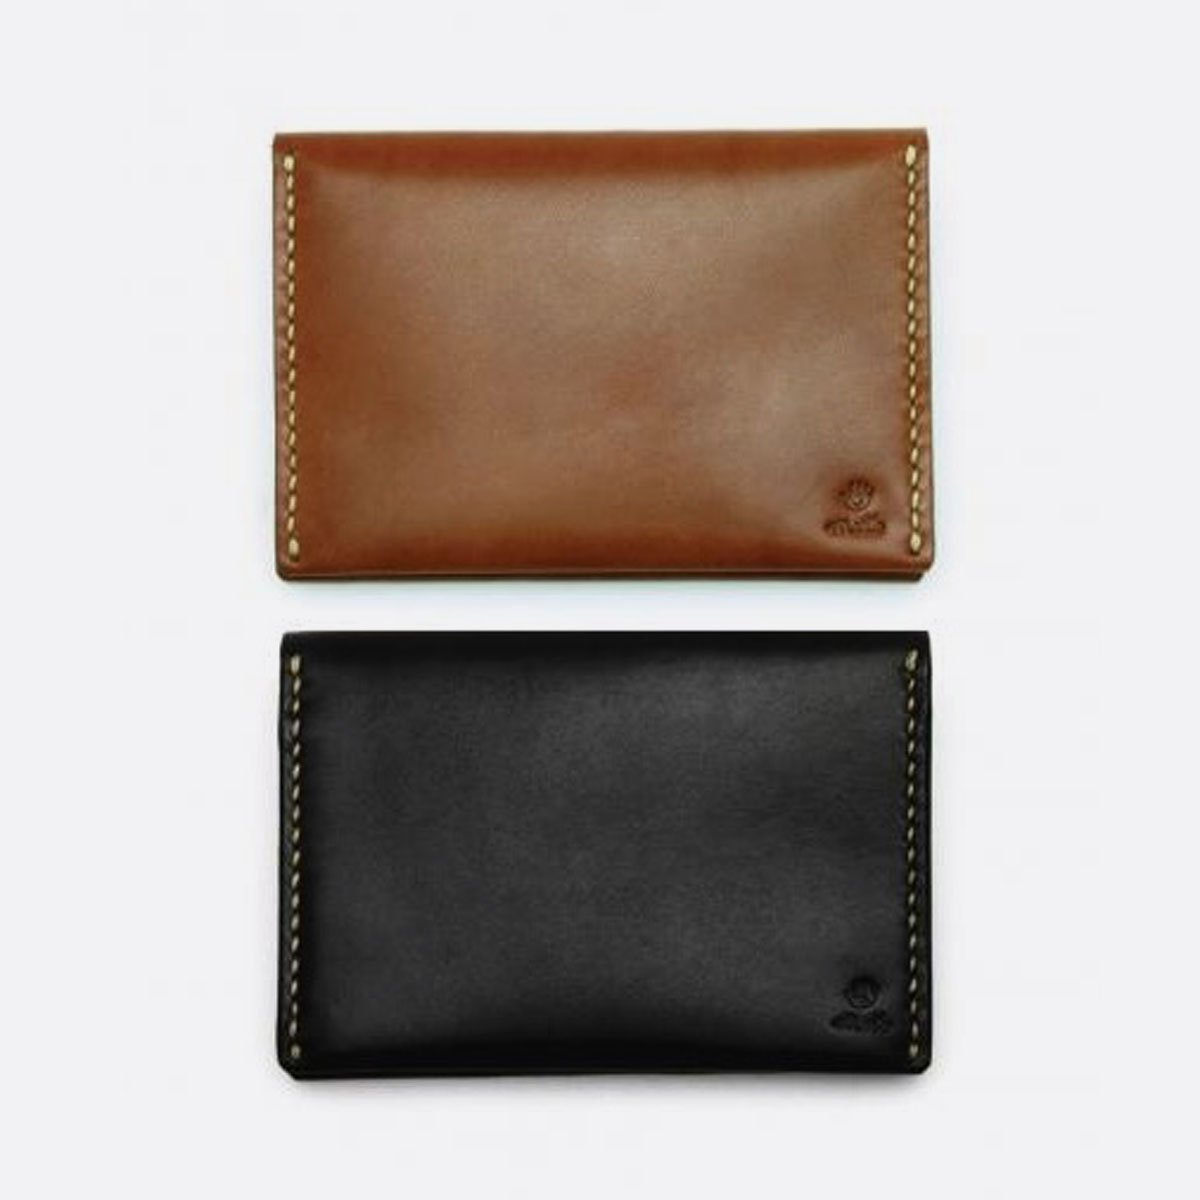 MOTO LEATHER&SILVER MOTO LEATHER CARDCASE CA1(定番5色)3